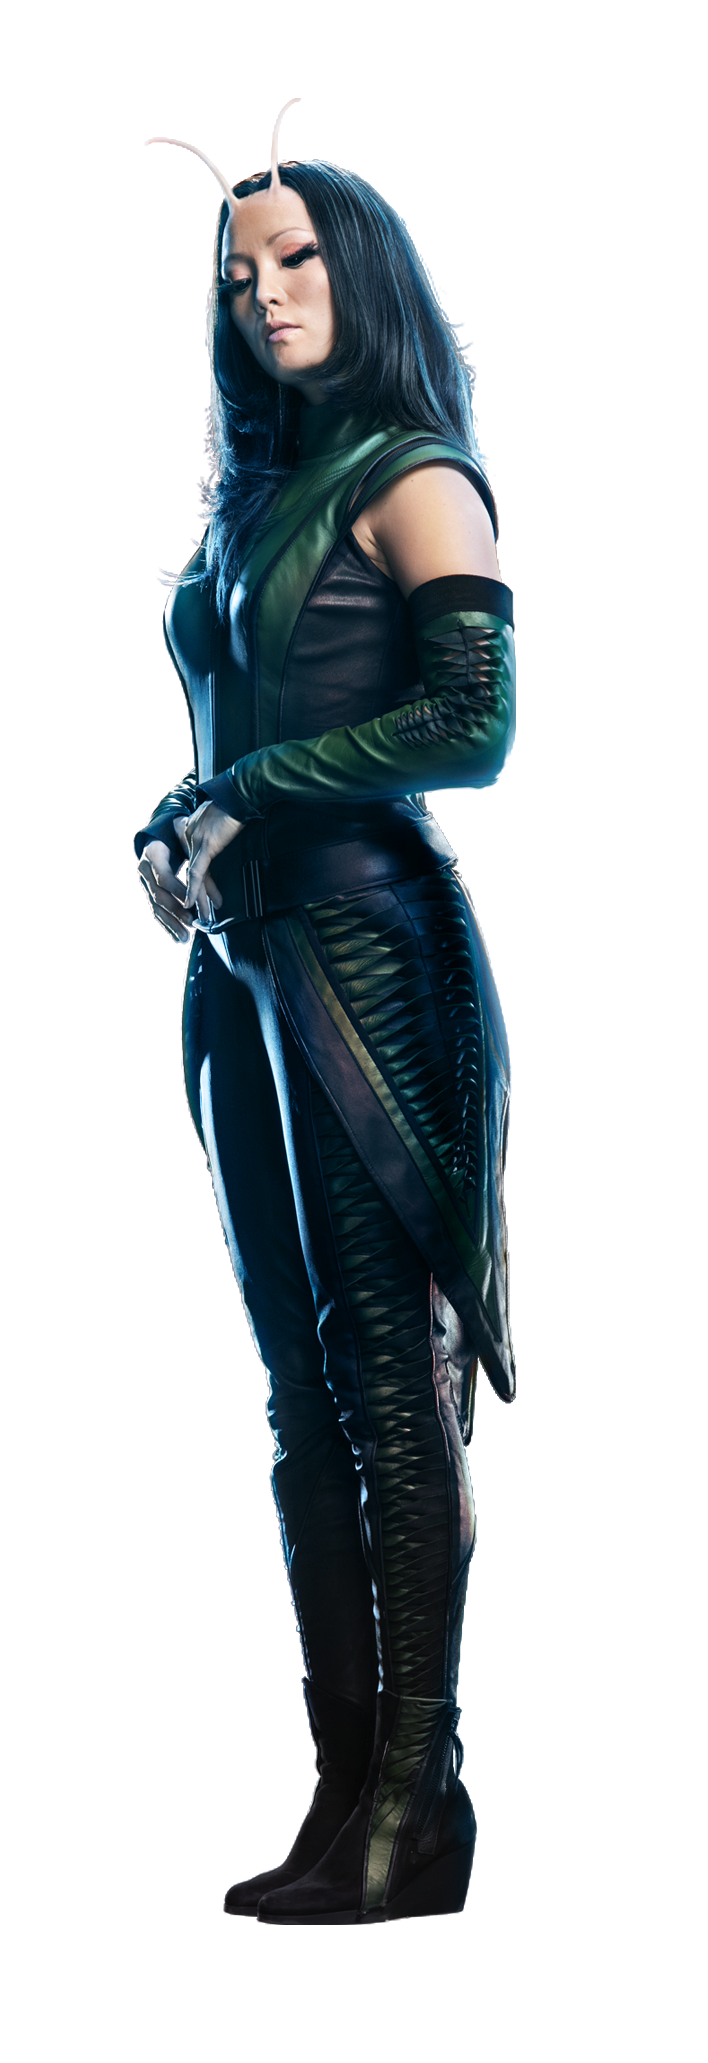 Marvel mantis png. Image movies fandom powered